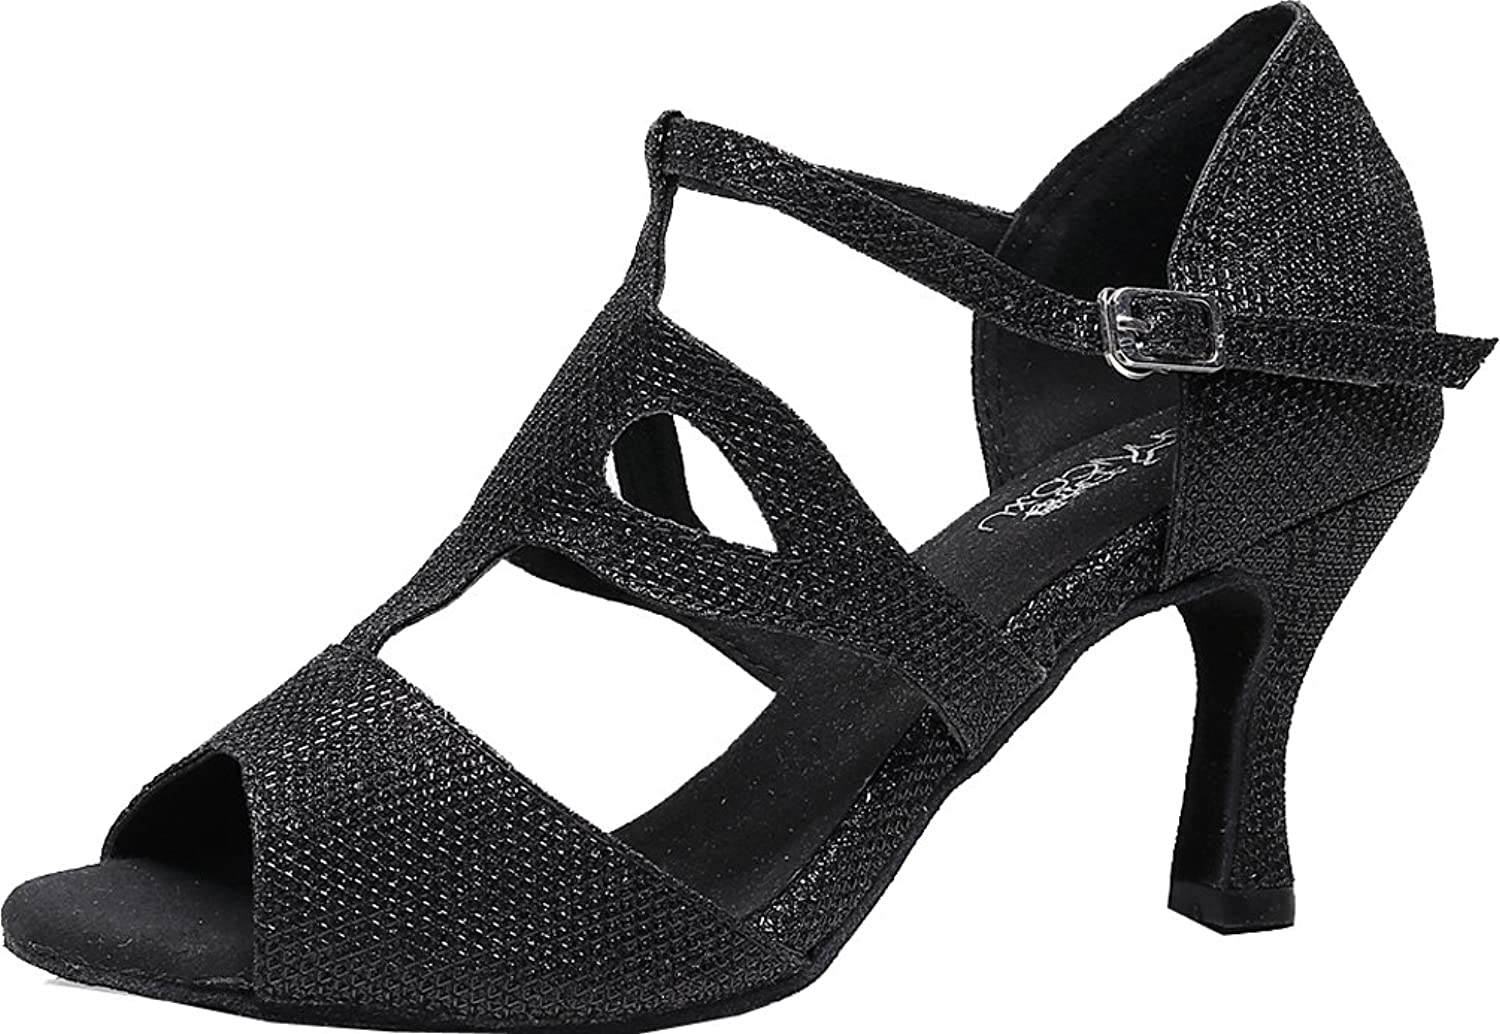 ABBY Products Women T-bar Latin Social Salsa Dance shoes Ballroom Peep Toe PU 7135